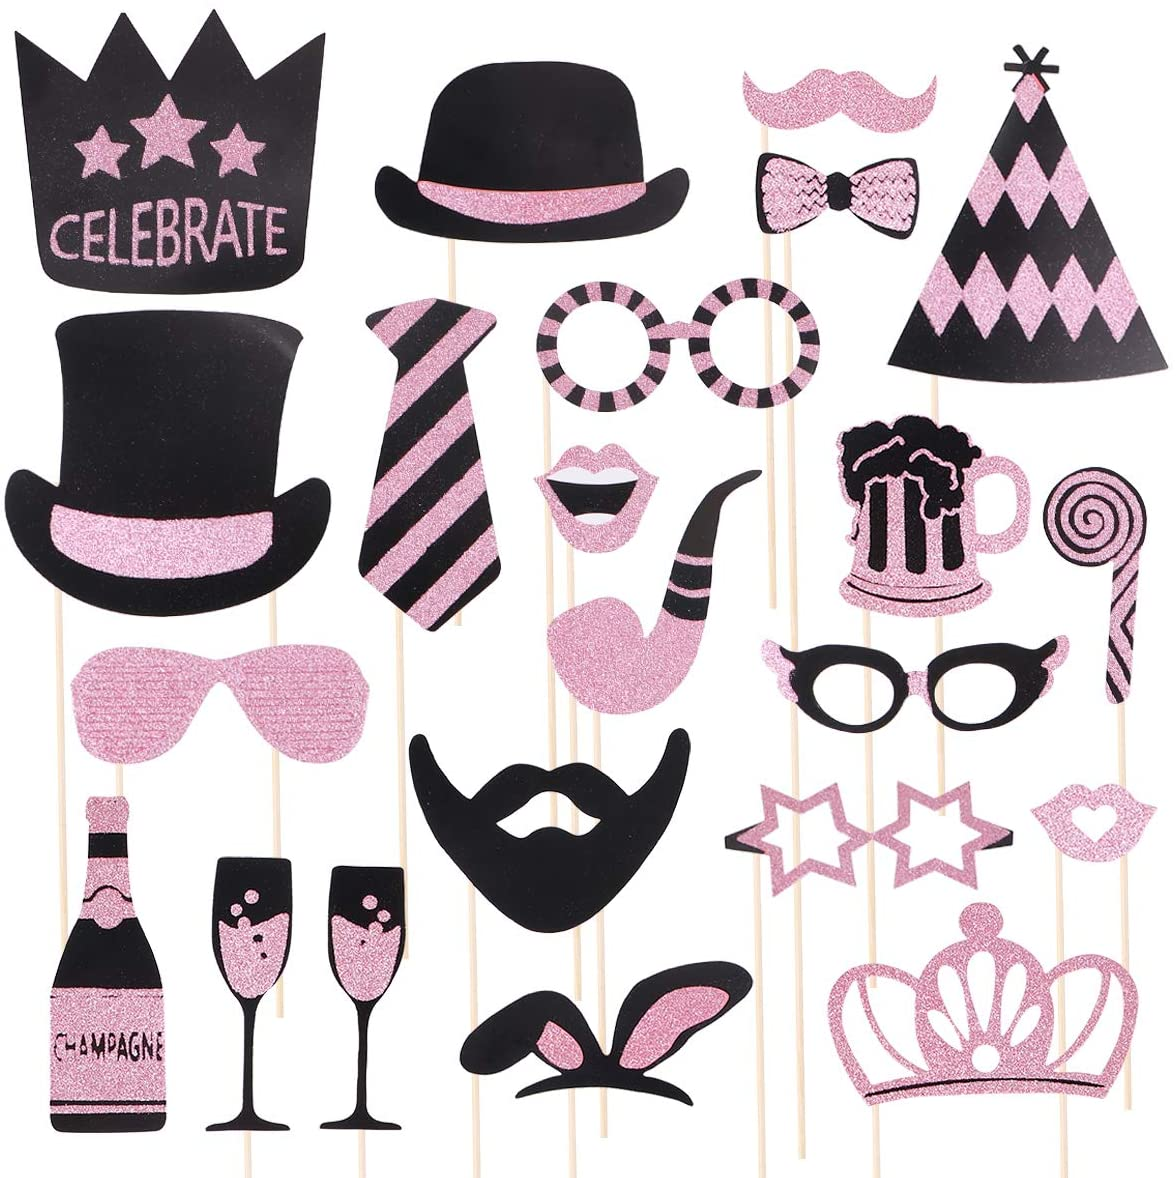 Birthday Wedding Party Photo Props Photo Booth Props Party Decorations Supplies (Rose Gold)